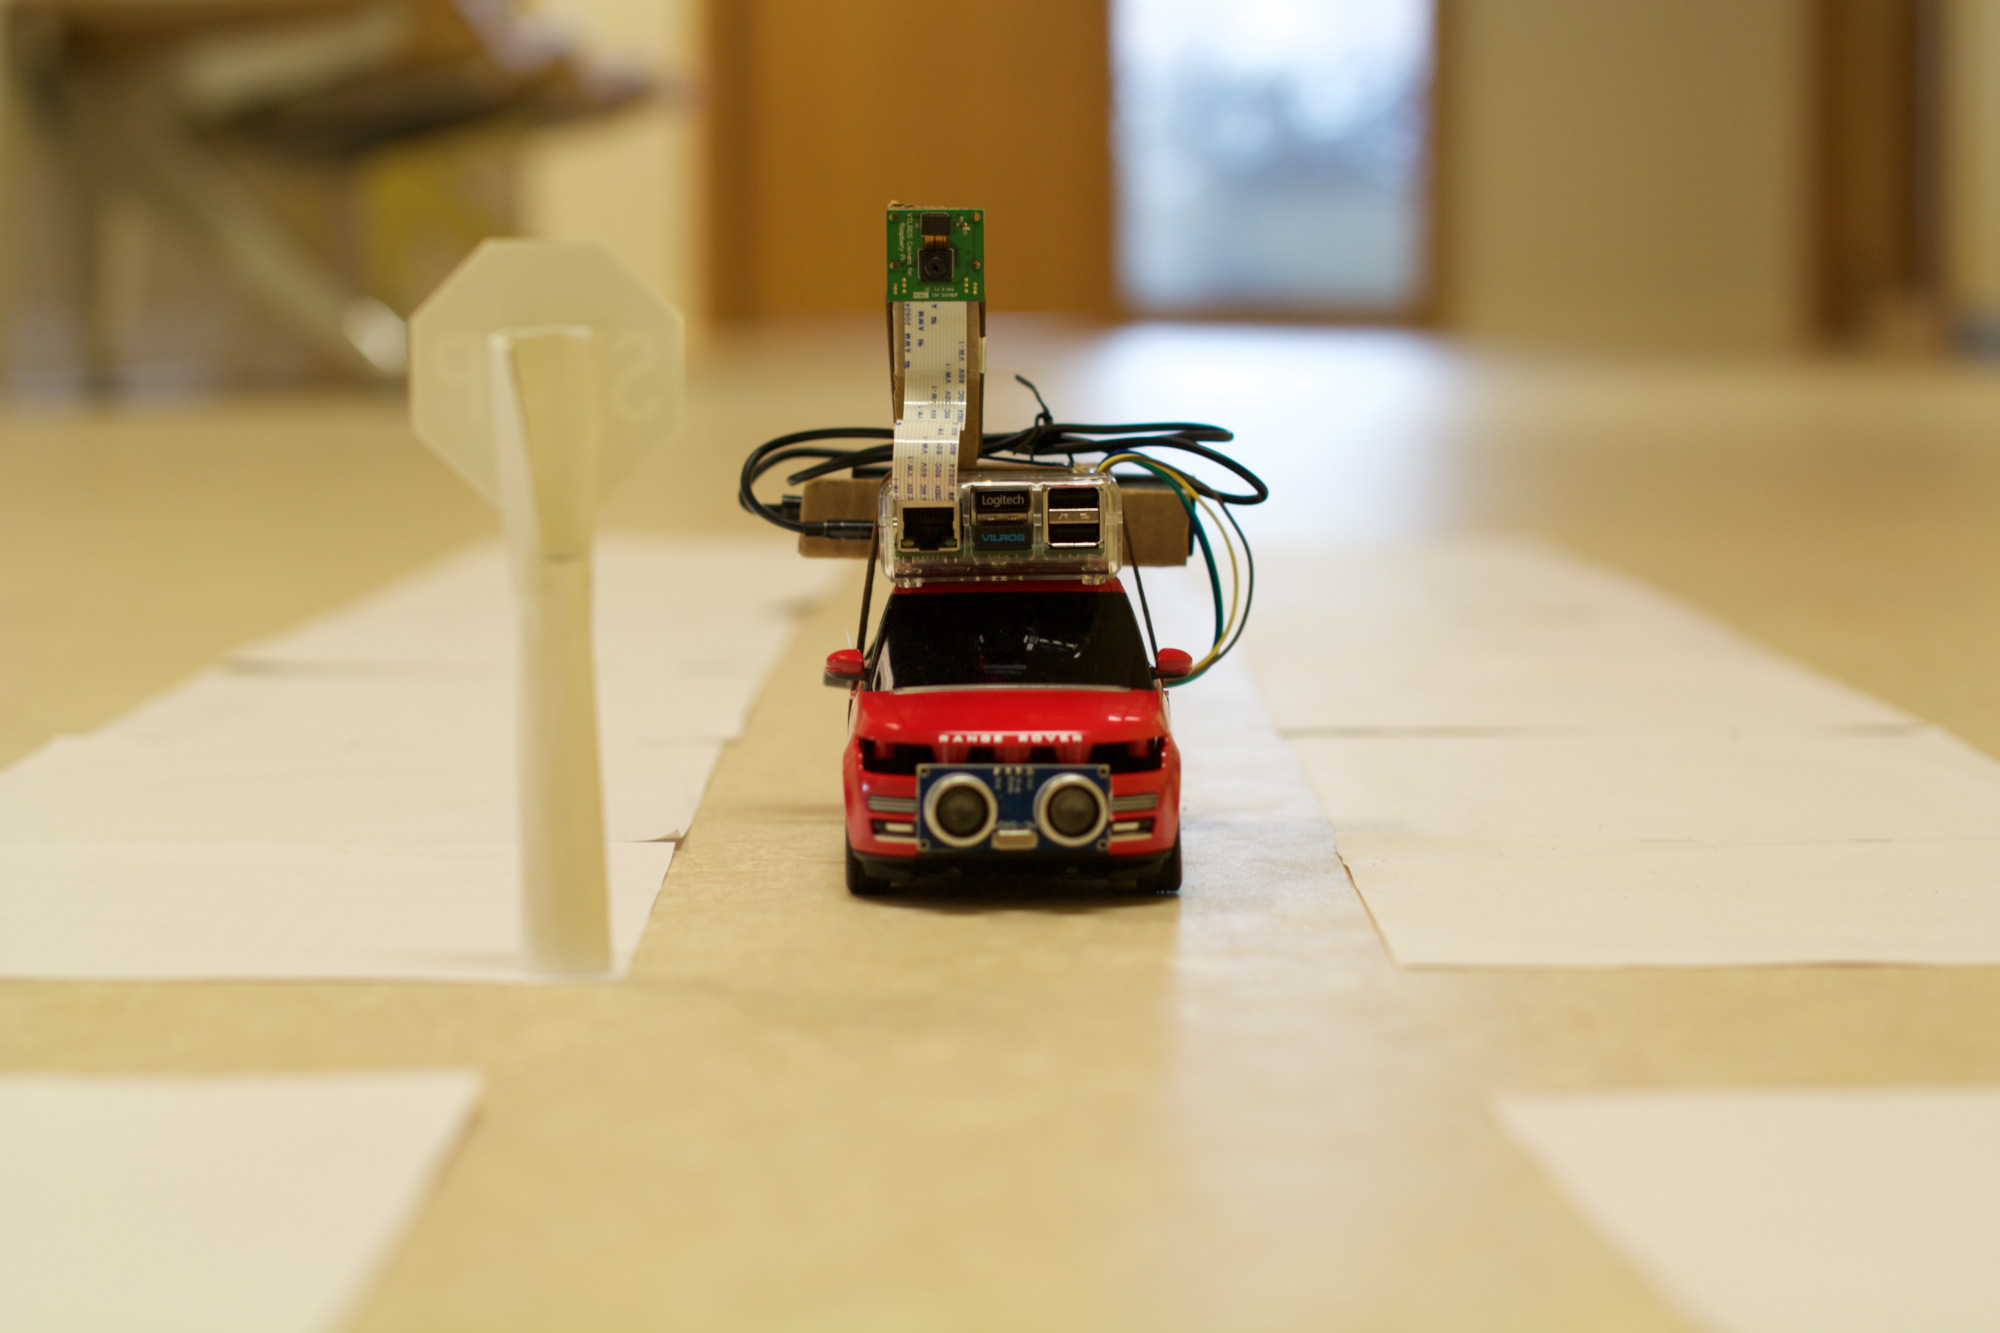 Self Driving Car Raspberry Pi R C Switch 3 For Radio Control Applications